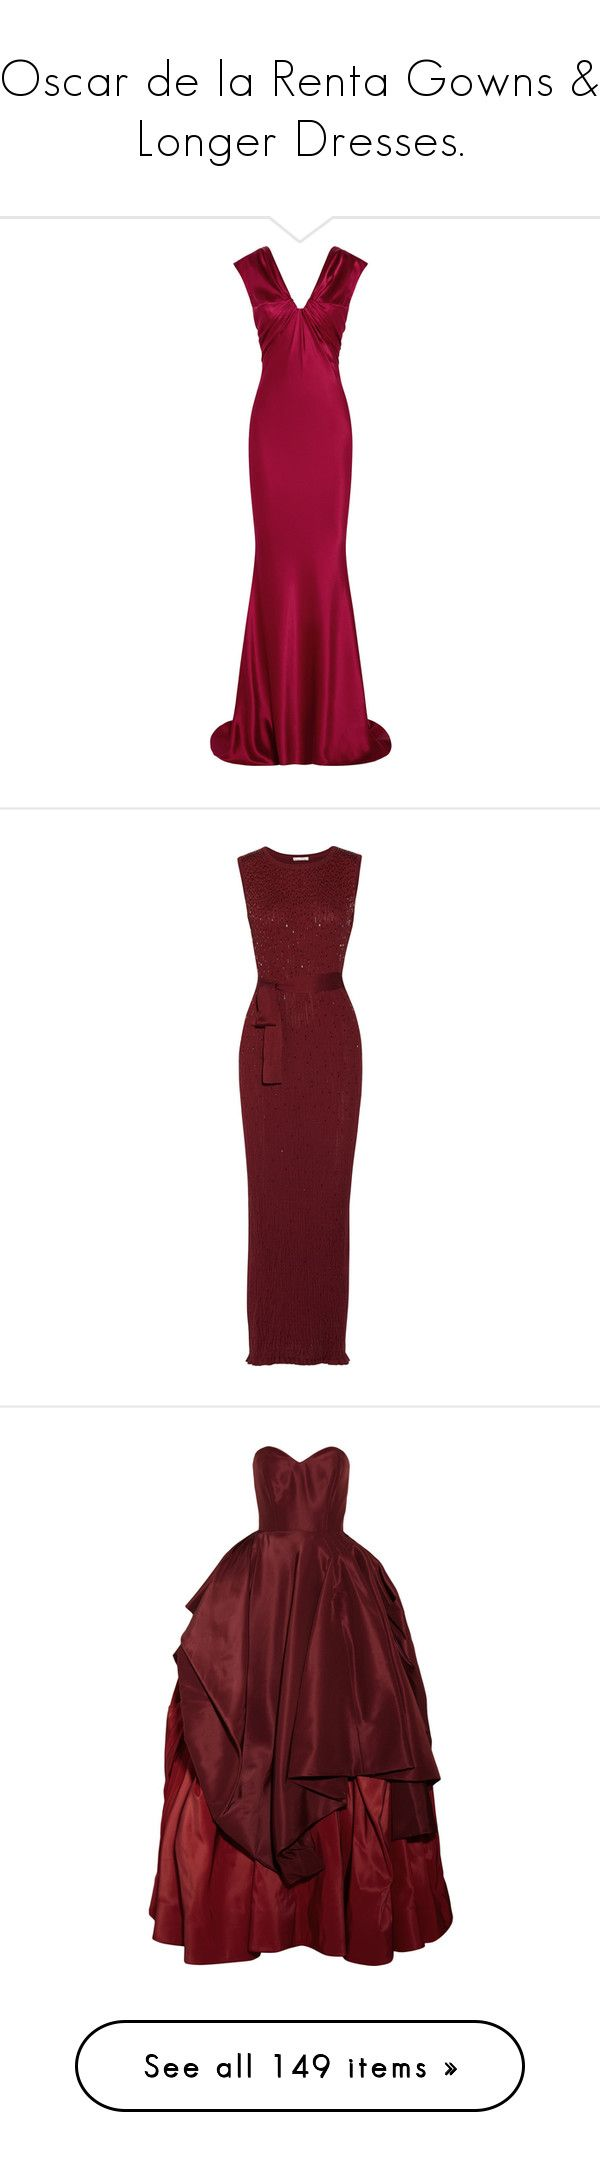 """Oscar de la Renta Gowns & Longer Dresses."" by that-drumming-noise ❤ liked on Polyvore featuring dresses, gowns, long dresses, oscar de la renta, evening gowns, crimson, purple evening dresses, petite dresses, purple dress and silk evening gowns"